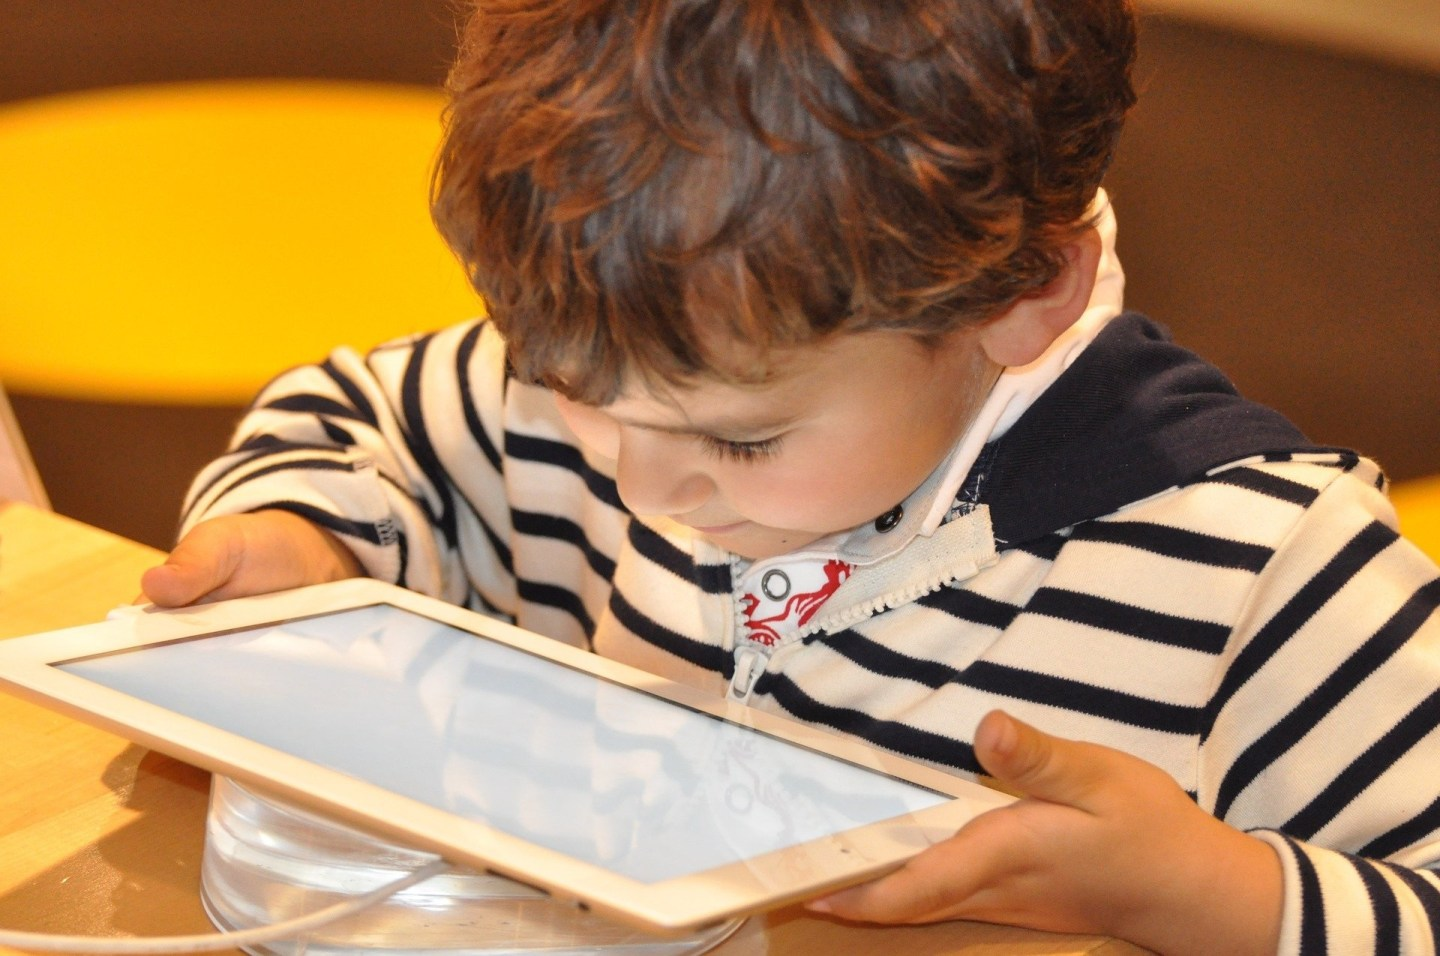 The impact of social media on young children